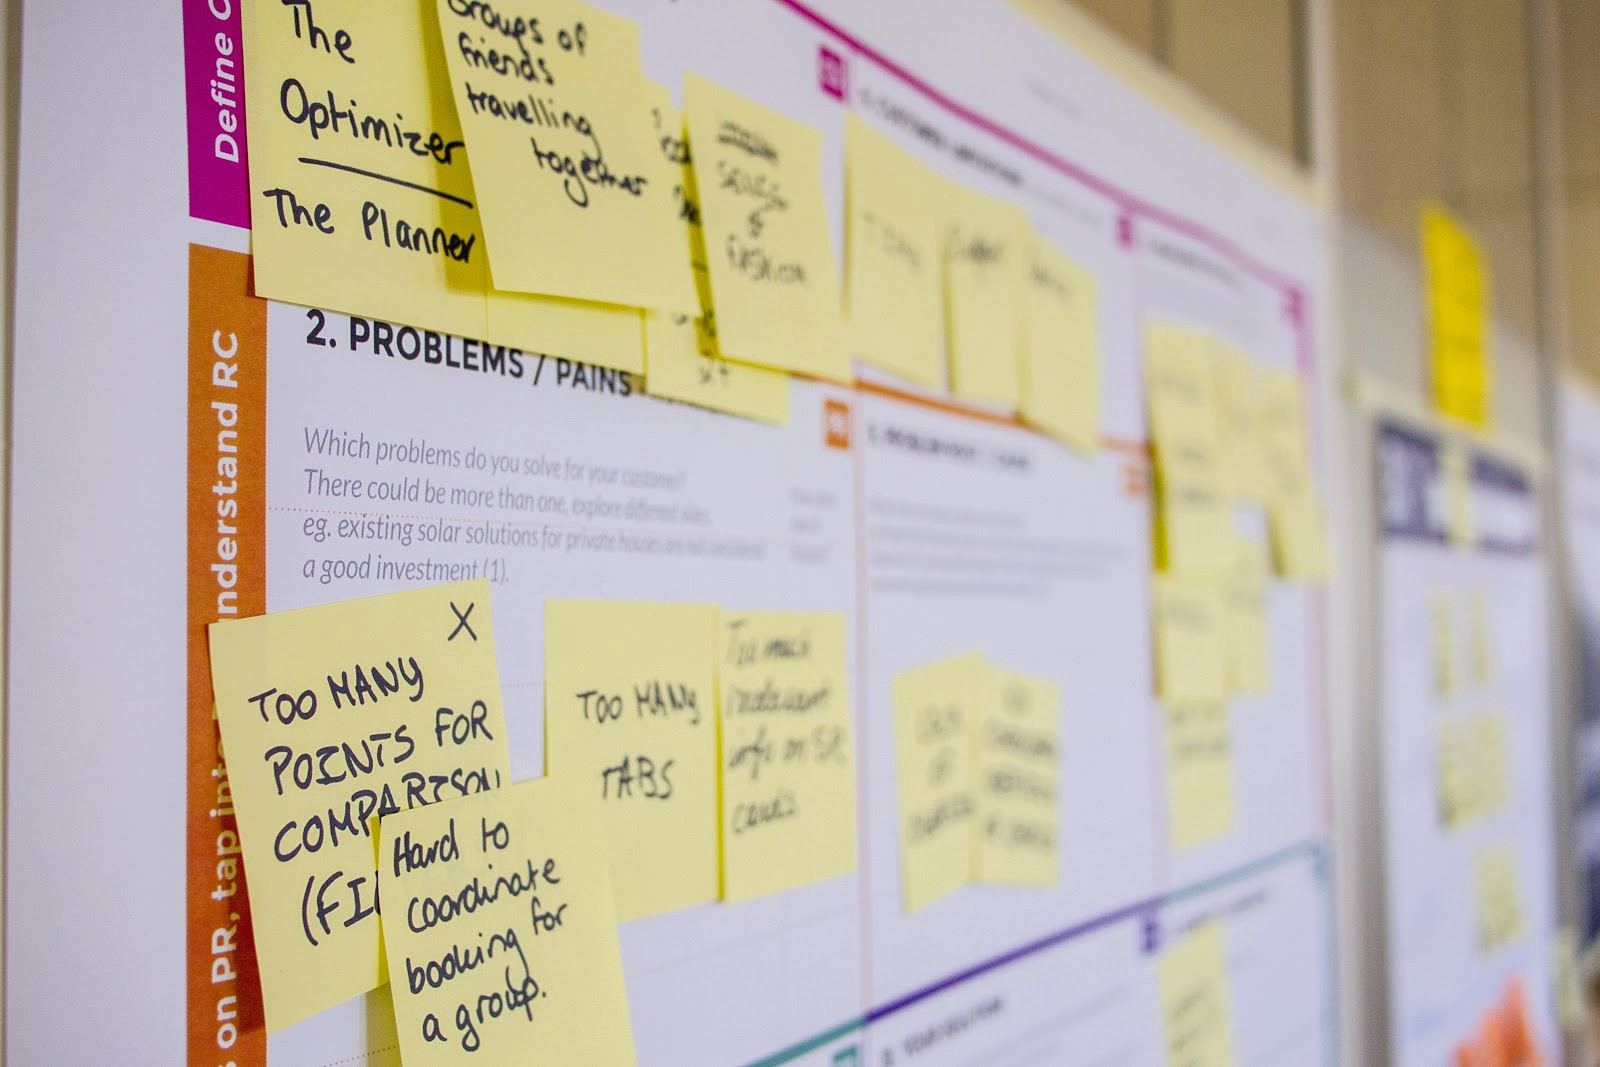 business strategy board for planning and challenges on yellow post-it notes, organisation and management